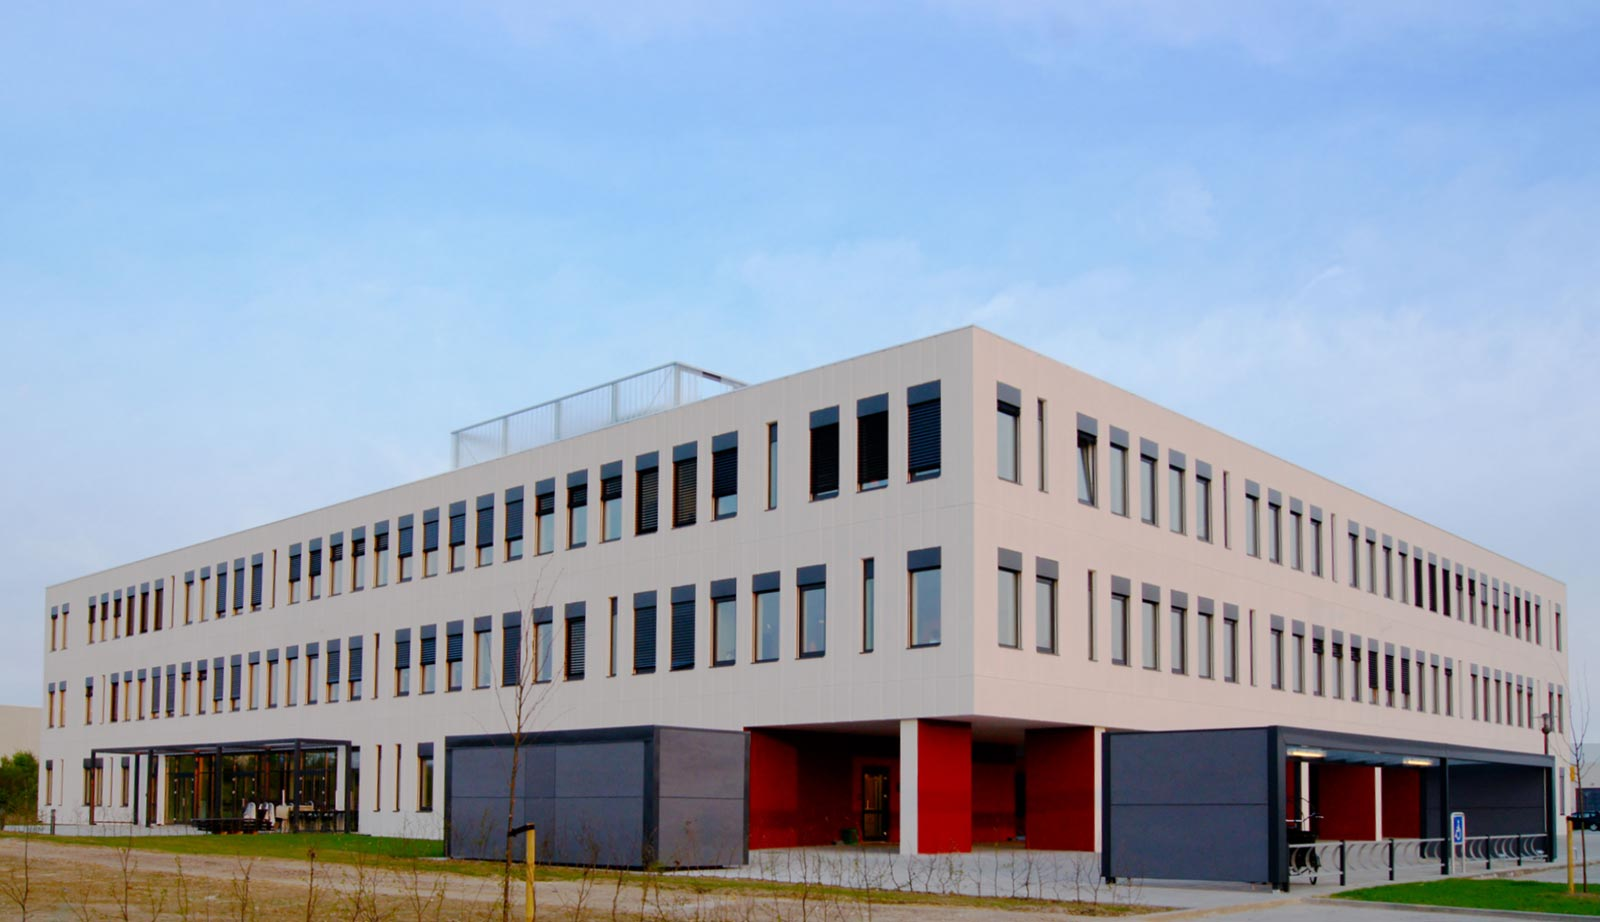 SuperGros Ringsted - Four-winged administration building in Ringsted holding 7.000 m2